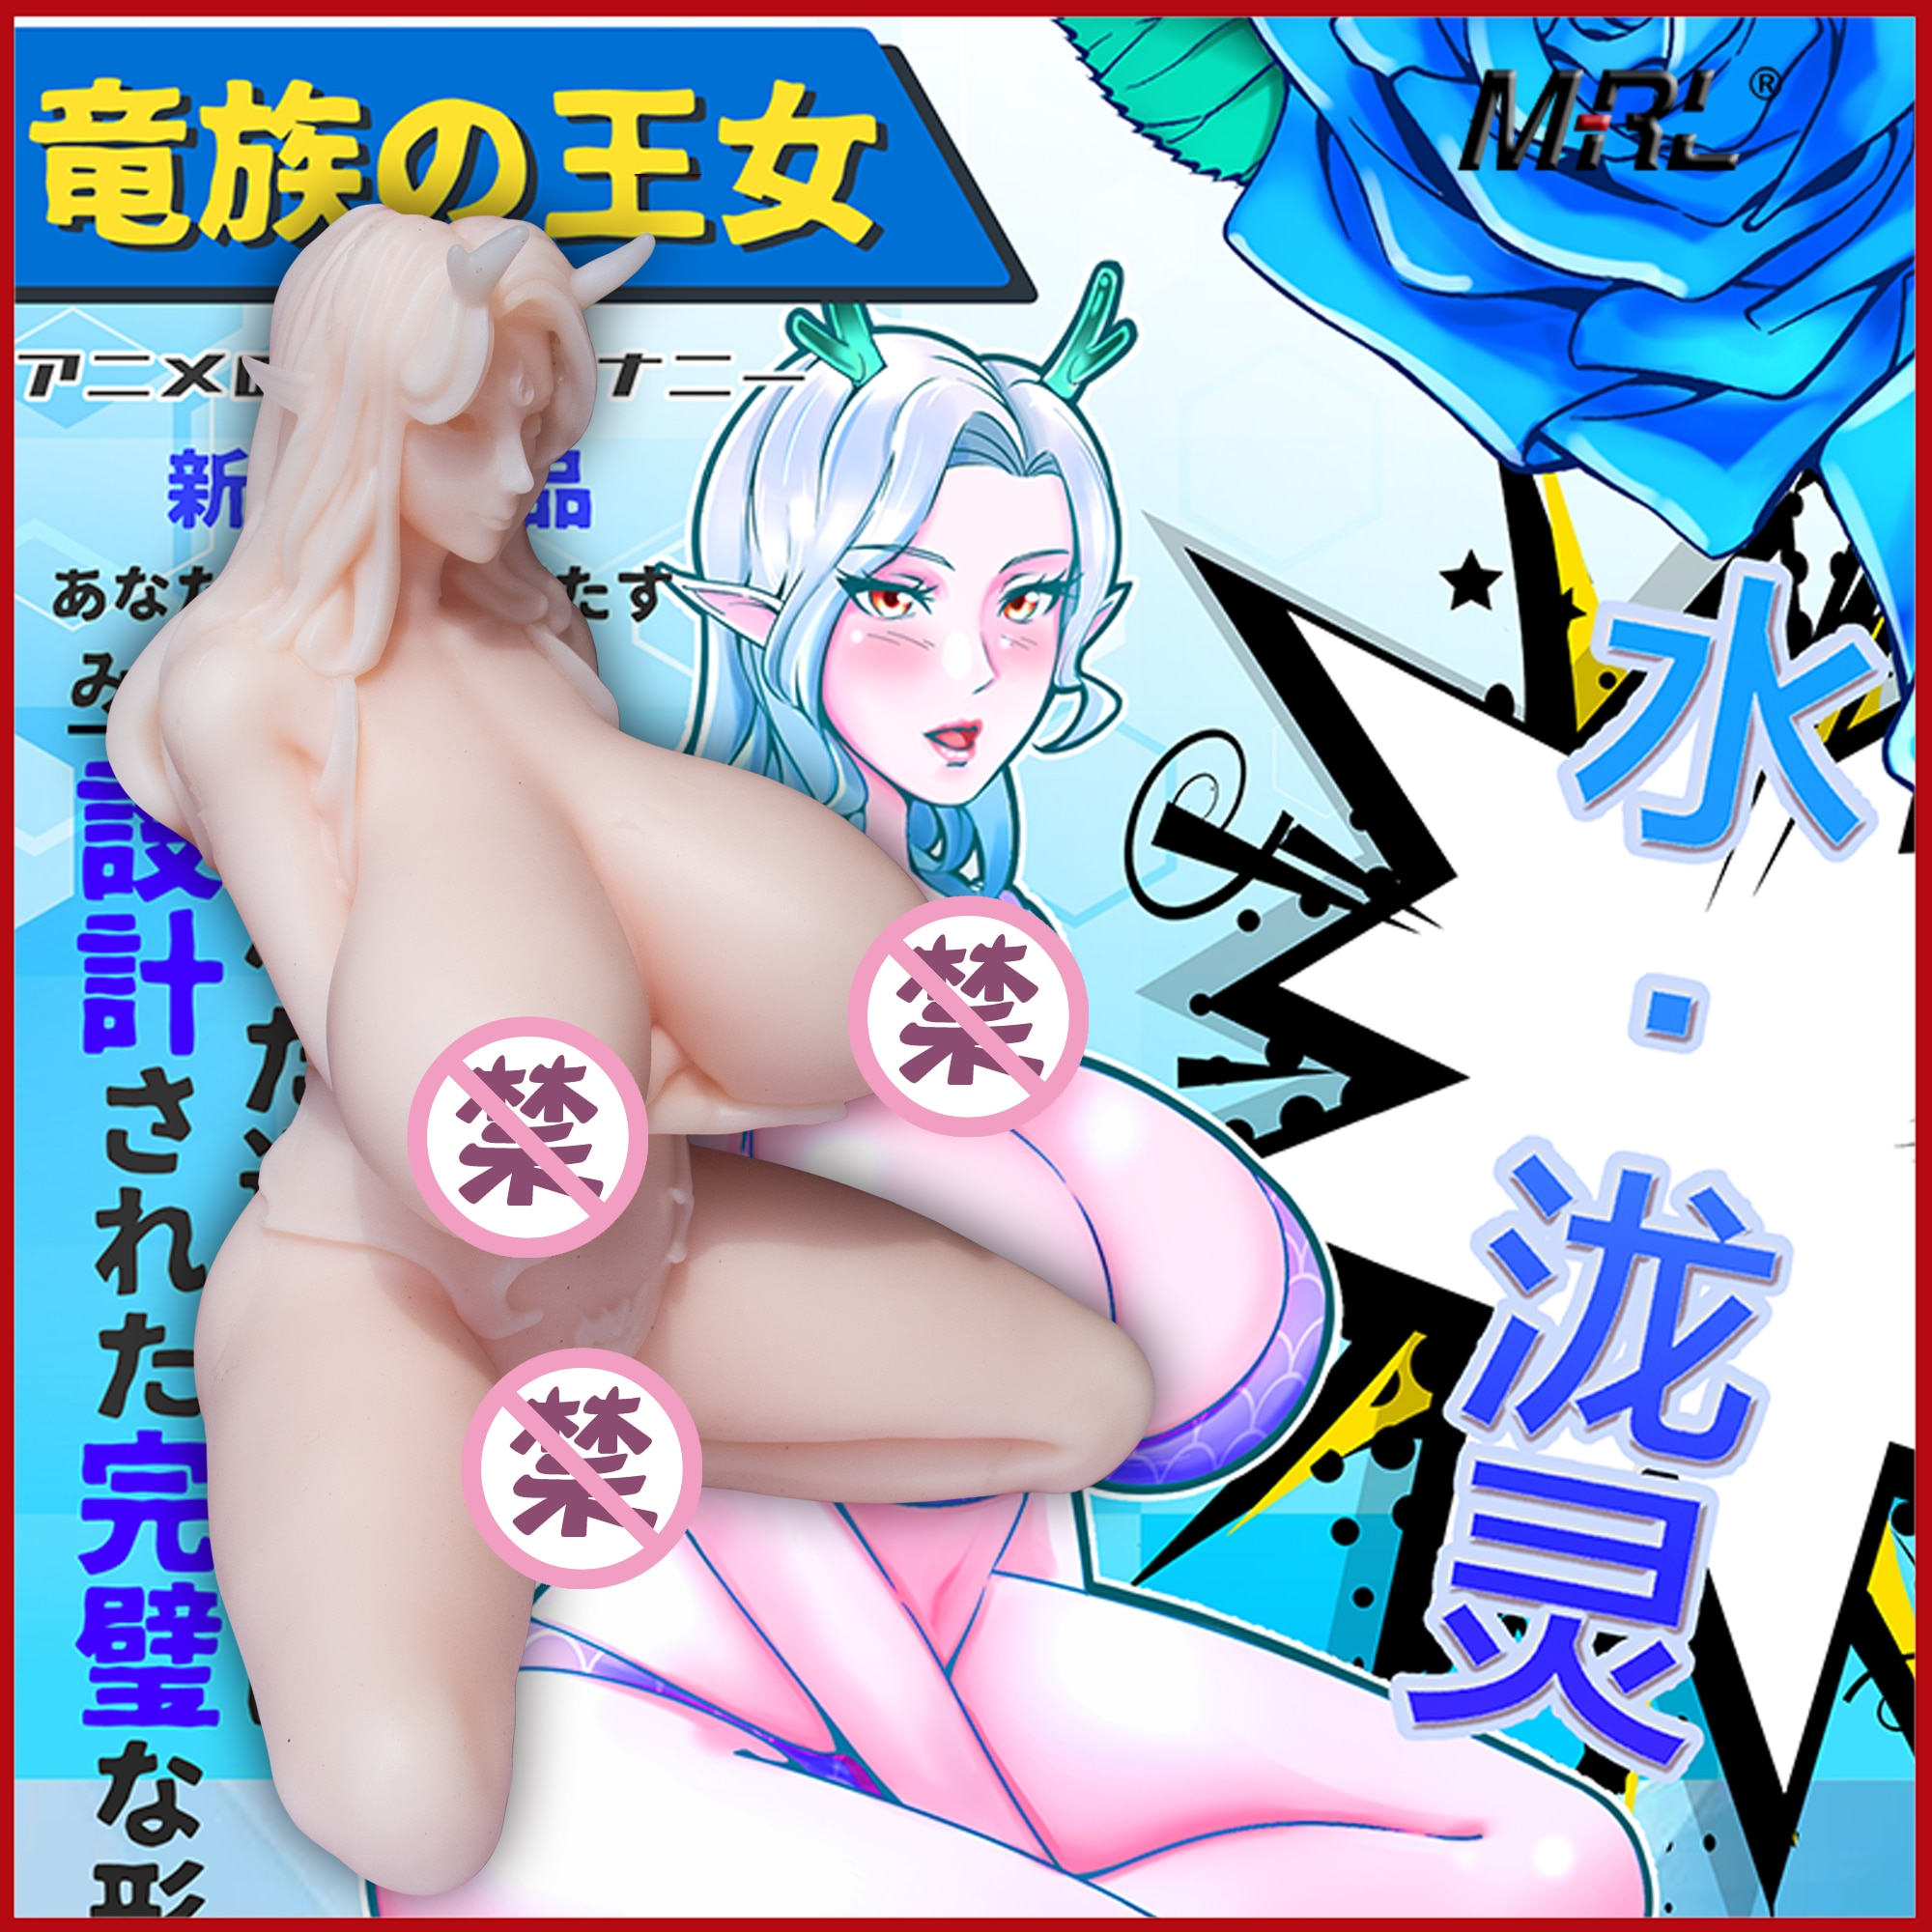 Silicone Sex Doll for Men Artificial Vagina Real Pussy Anime Dolls Male Masturbator Toys Adult